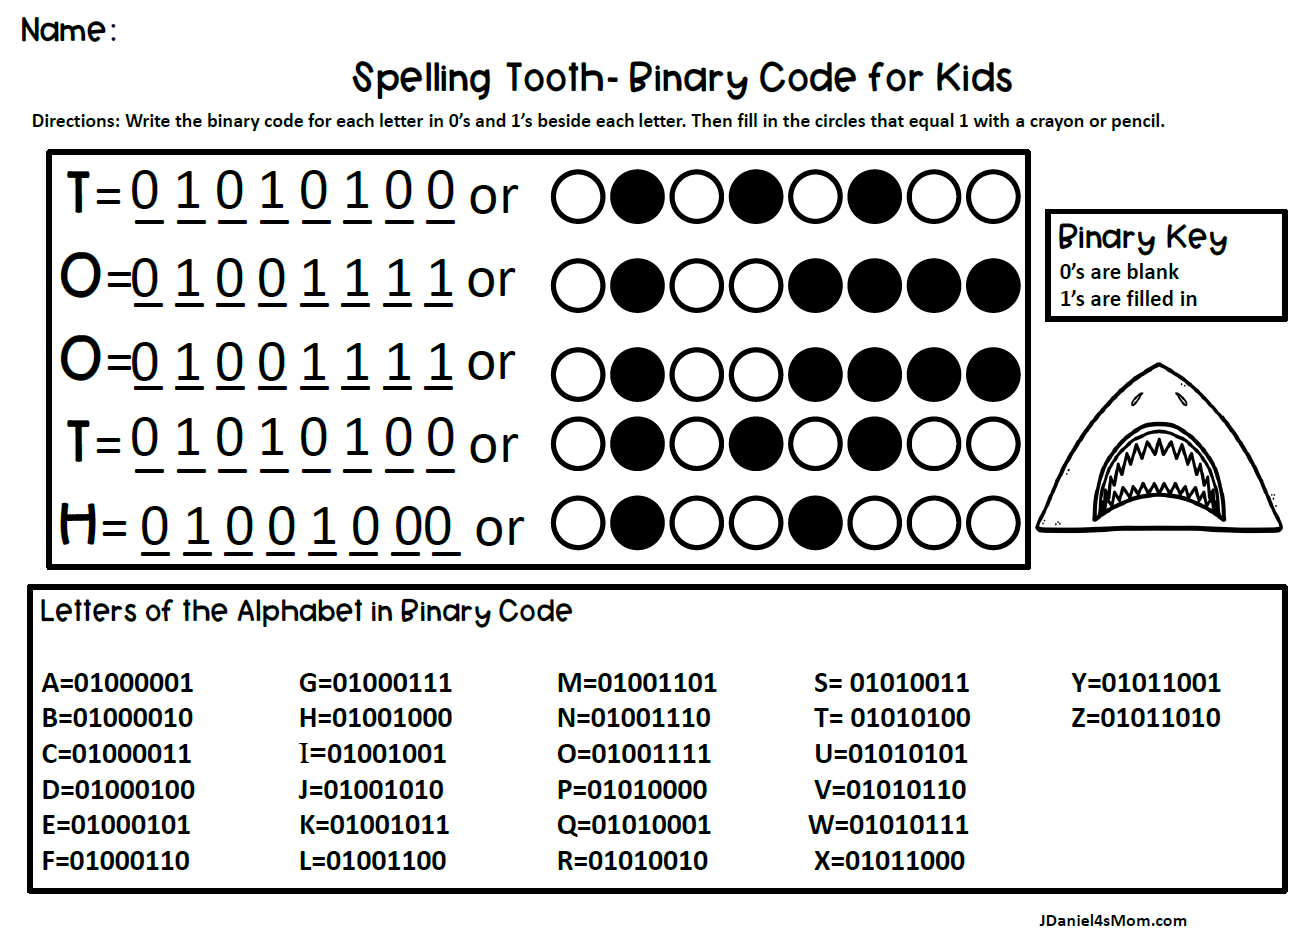 Binary Code for Kids- Spelling Shark Words (Tooth)